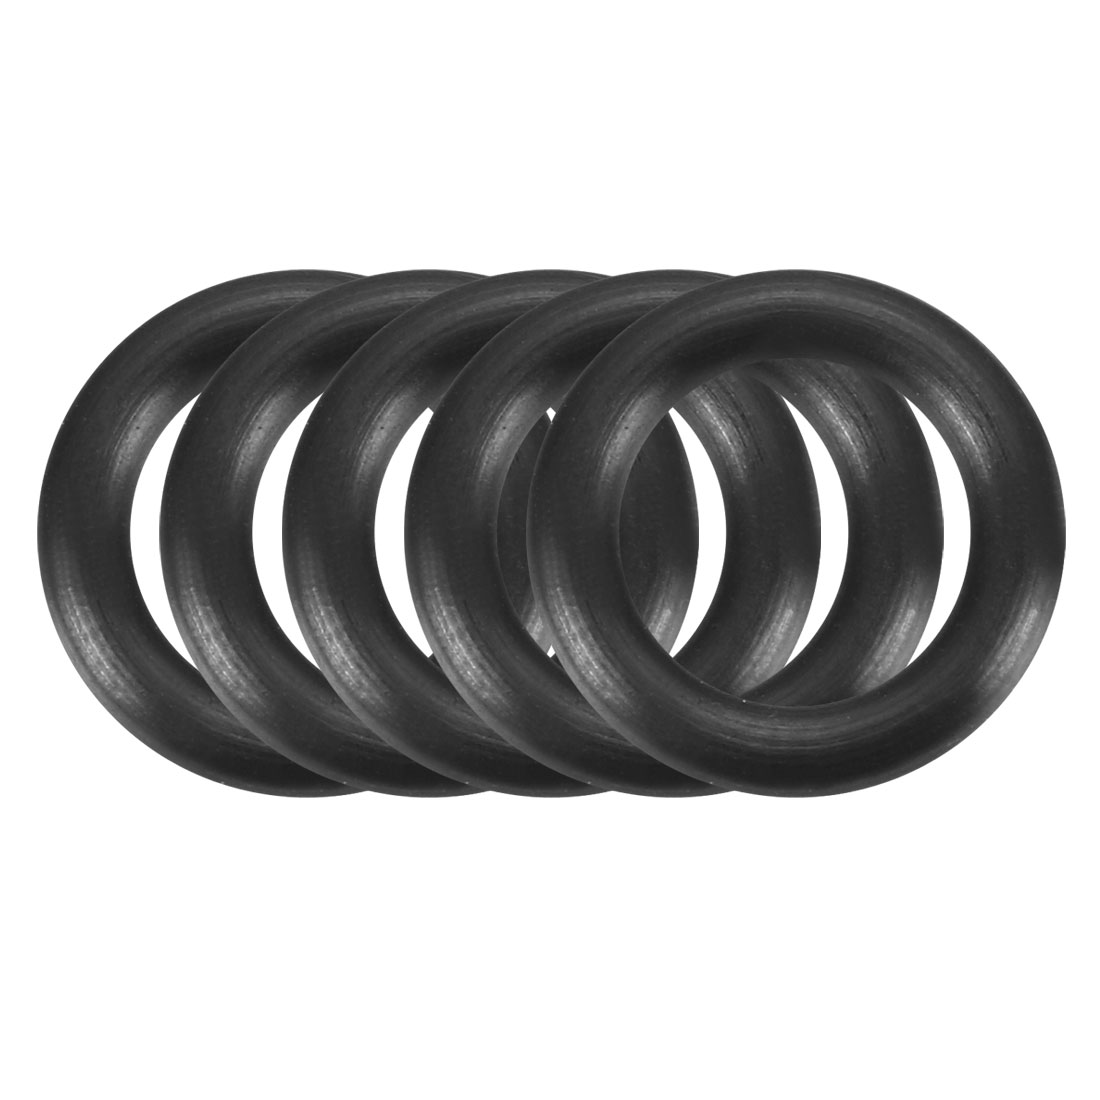 100 Pcs Black 11mm x 2mm Rubber Oil Resistant Sealing Ring O-shape Grommets